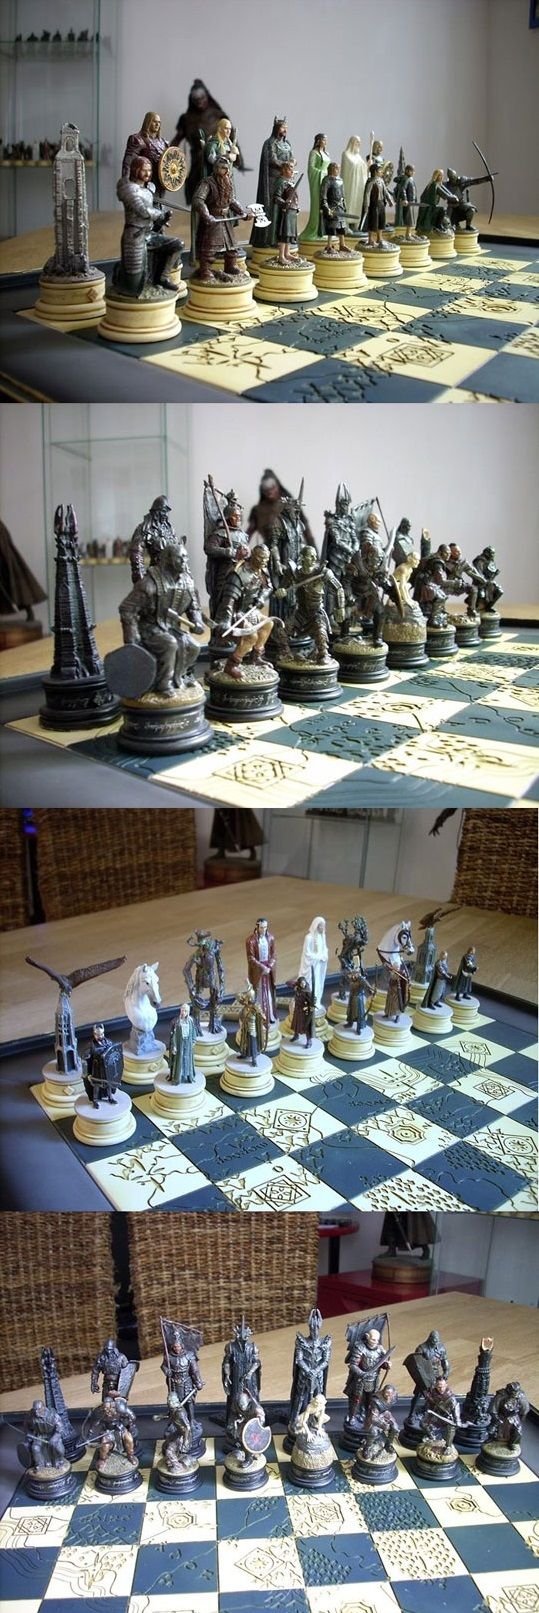 Awesome chess set books movies yellow boxes pinterest - Lord of the rings chess set for sale ...